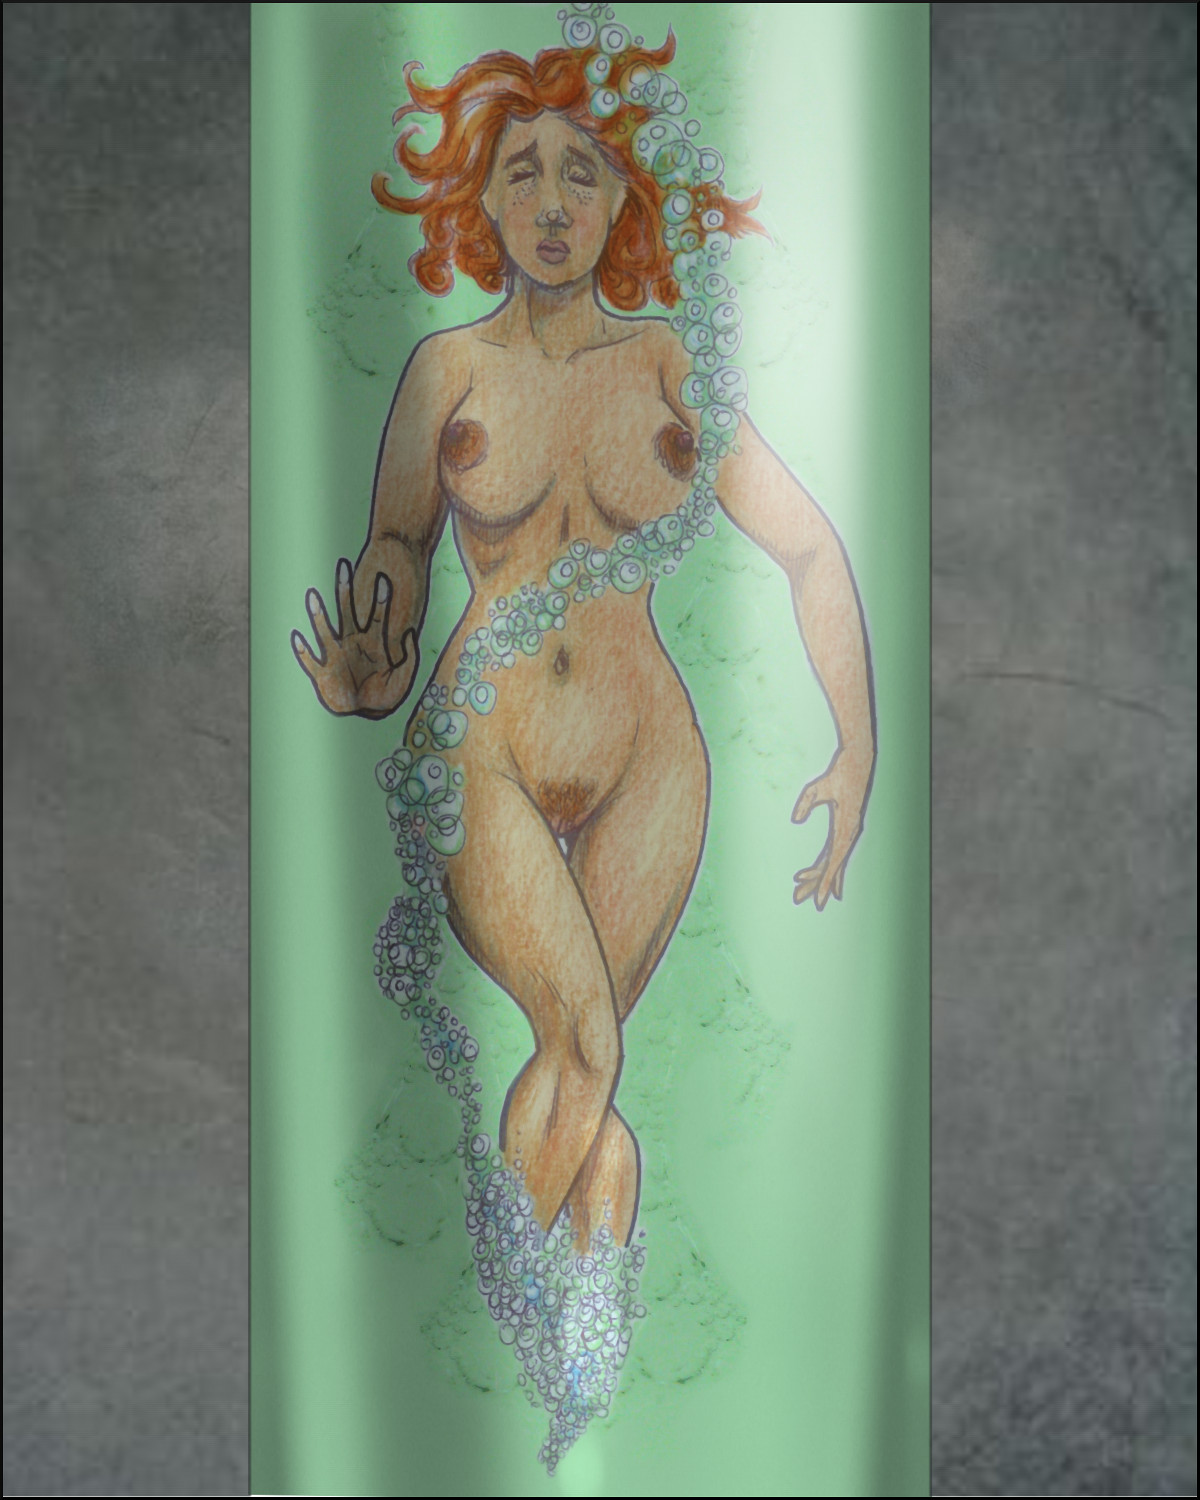 Naked Jireen dissolves in a tube.